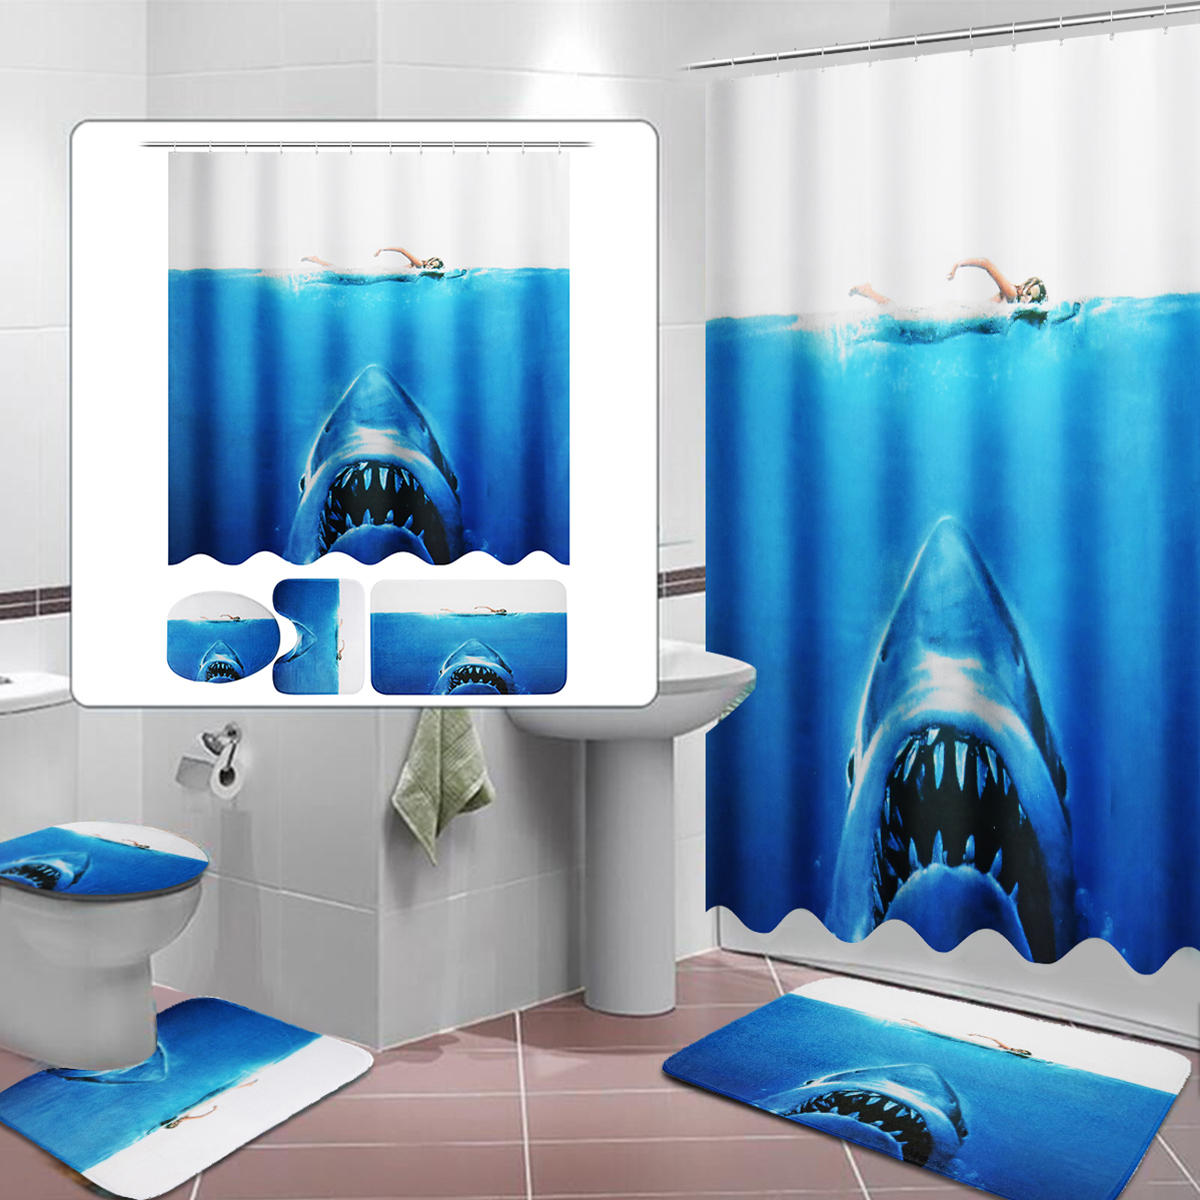 Bathroom Shower Sets Deep Sea Shark 3d Printing Bathroom Shower Curtain Toilet Cover Mat Non Slip Rug Sets